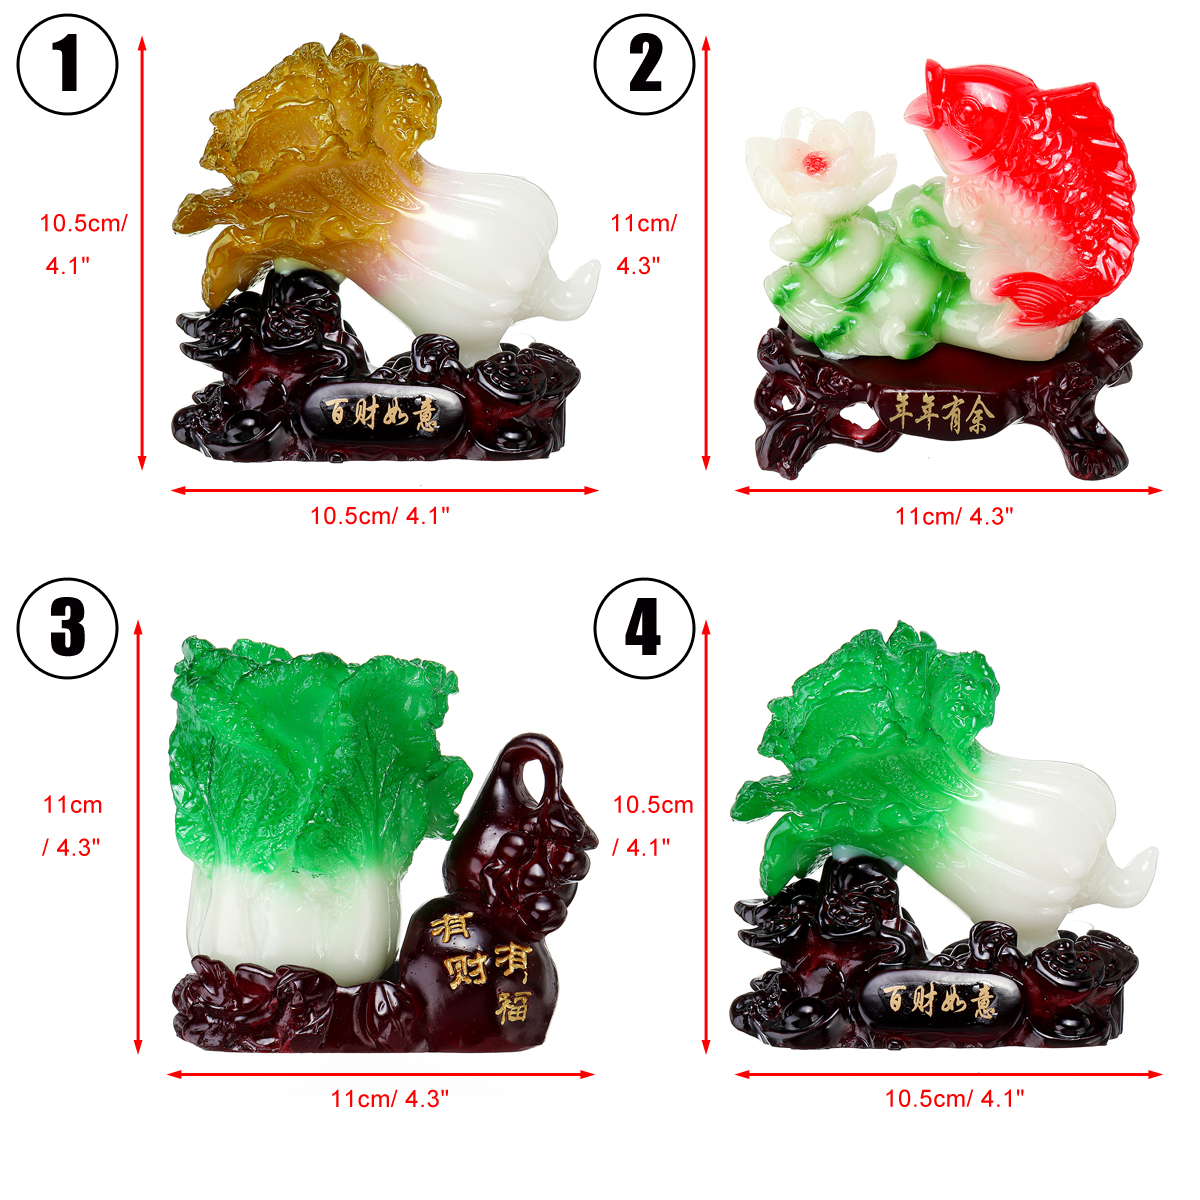 Us 10 18 22 Off Chinese Lucky Jade Cabbage Decoration Opened Housewarming Gifts Home Decorations Feng Shui Living Room Bedroom Desk Decoration In